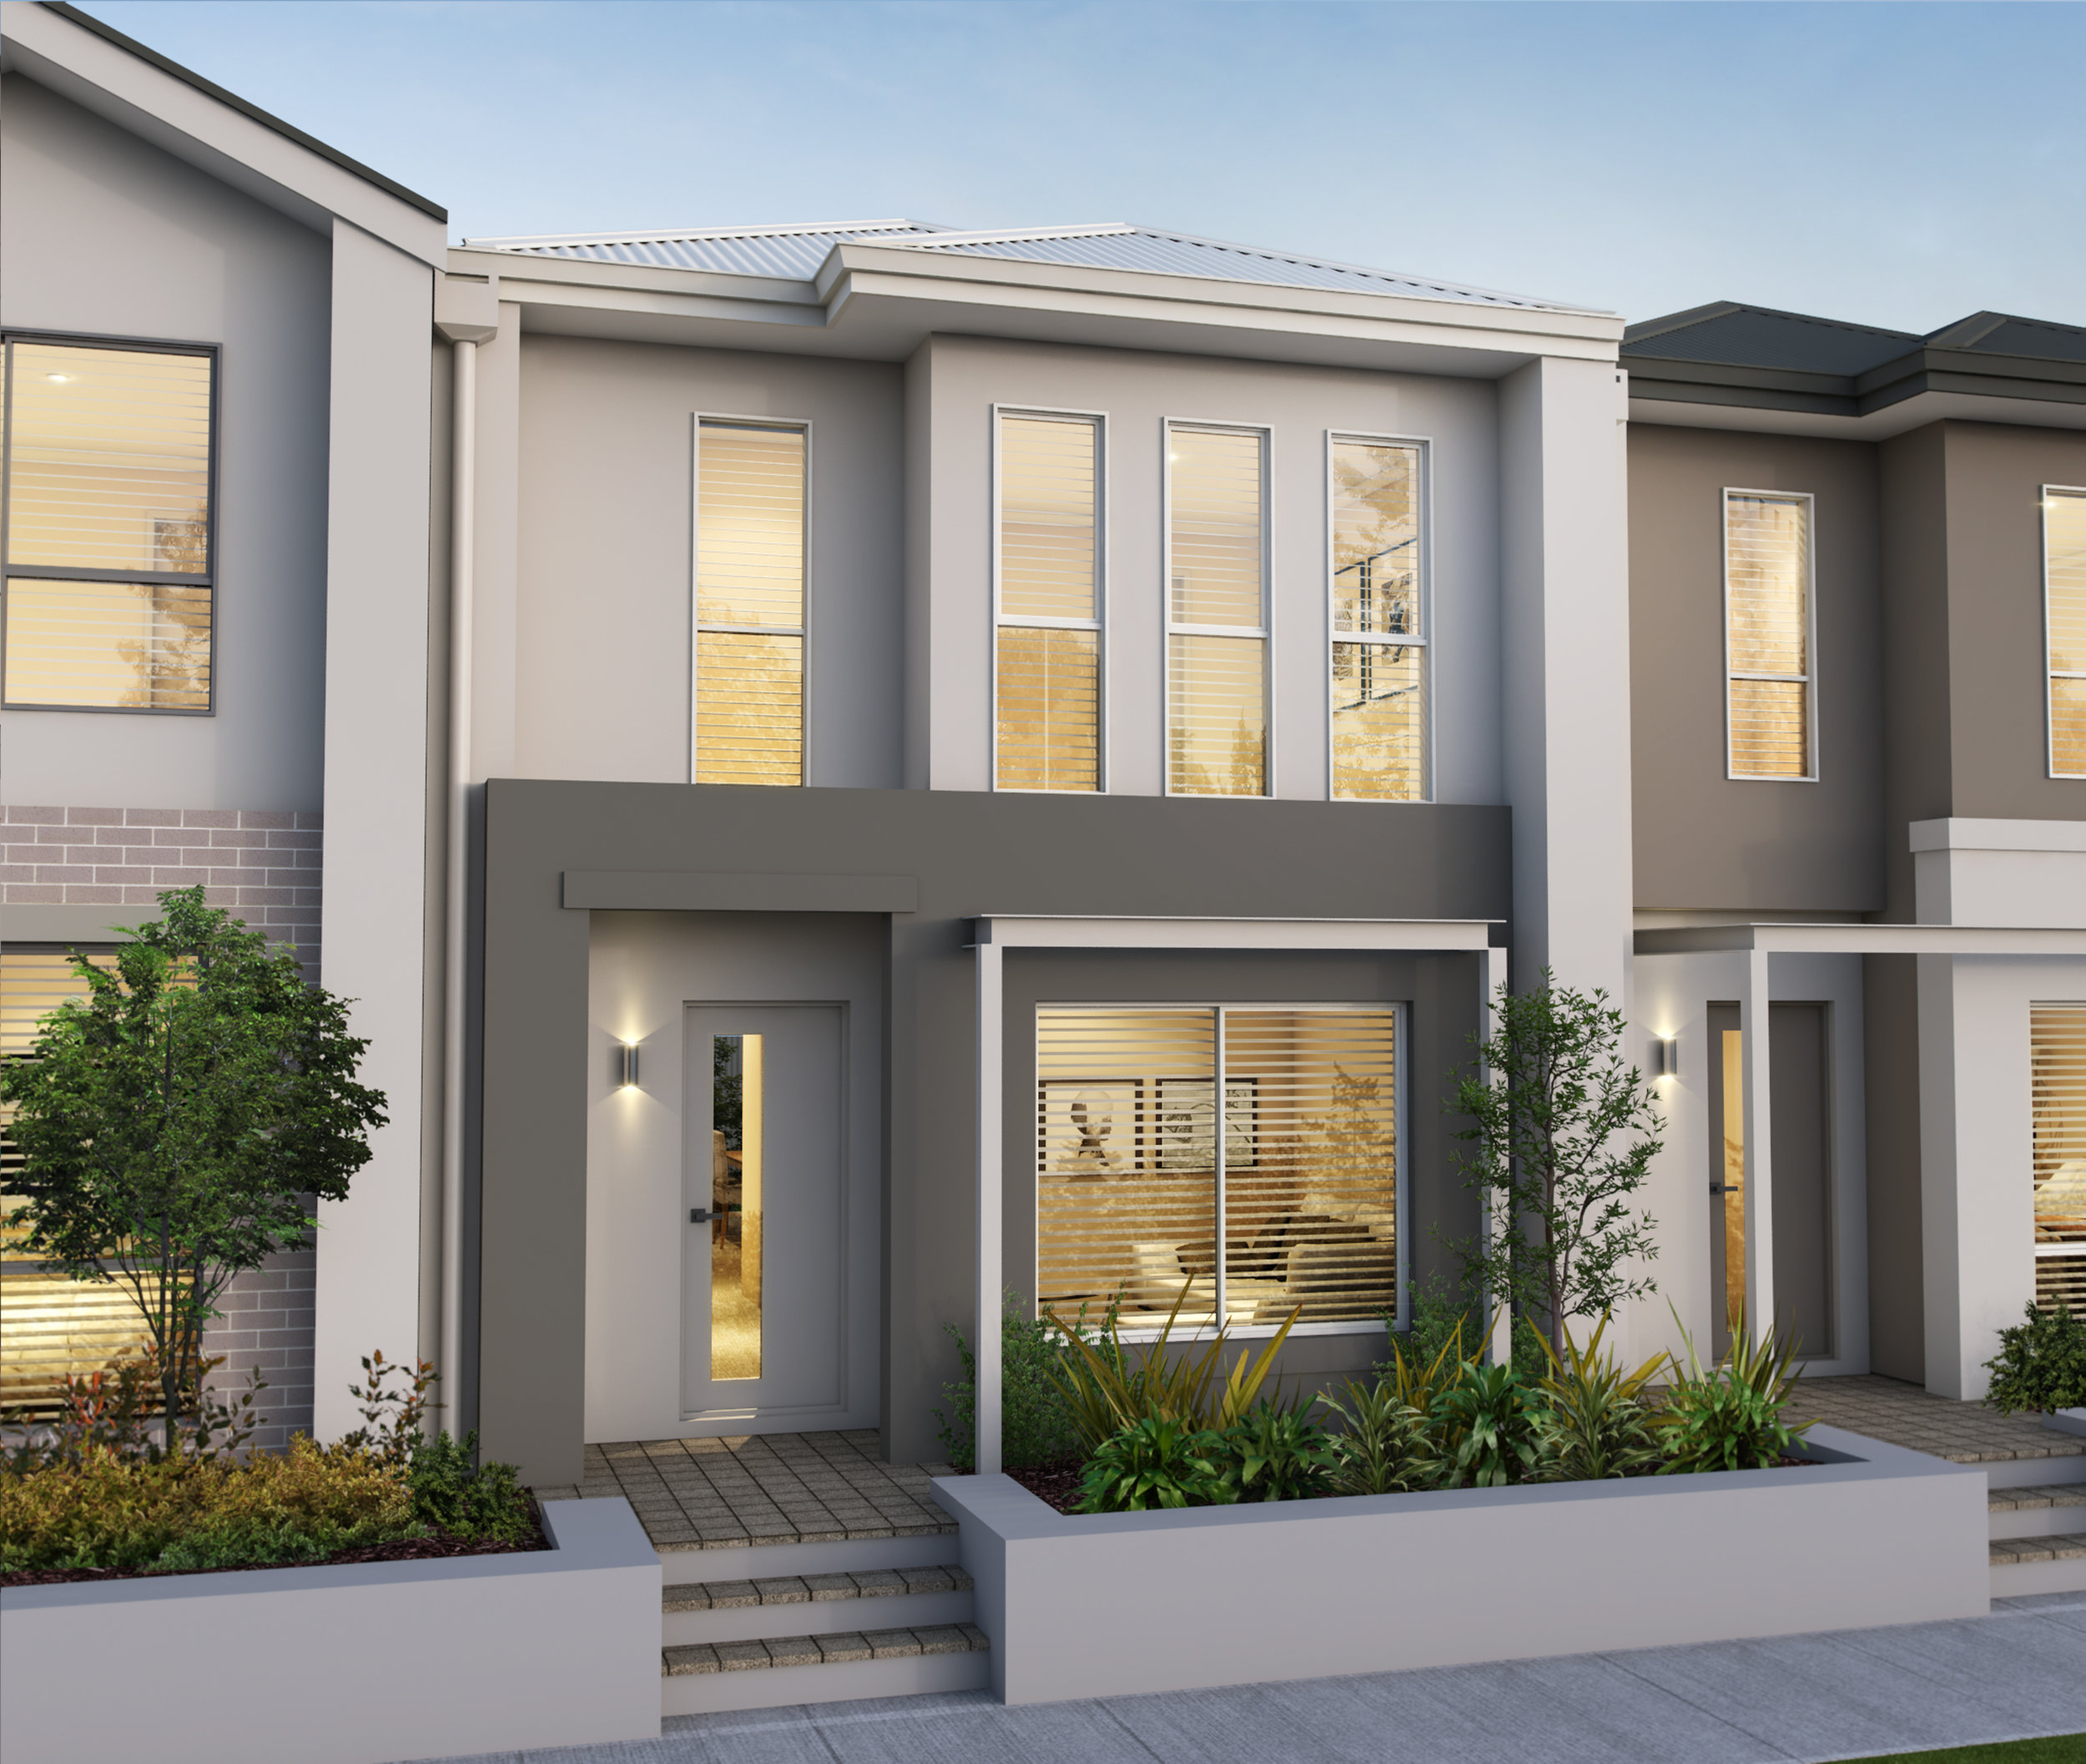 LOT 126 - FROM $451,250*4 Bed + 2 Bath + 2 Car